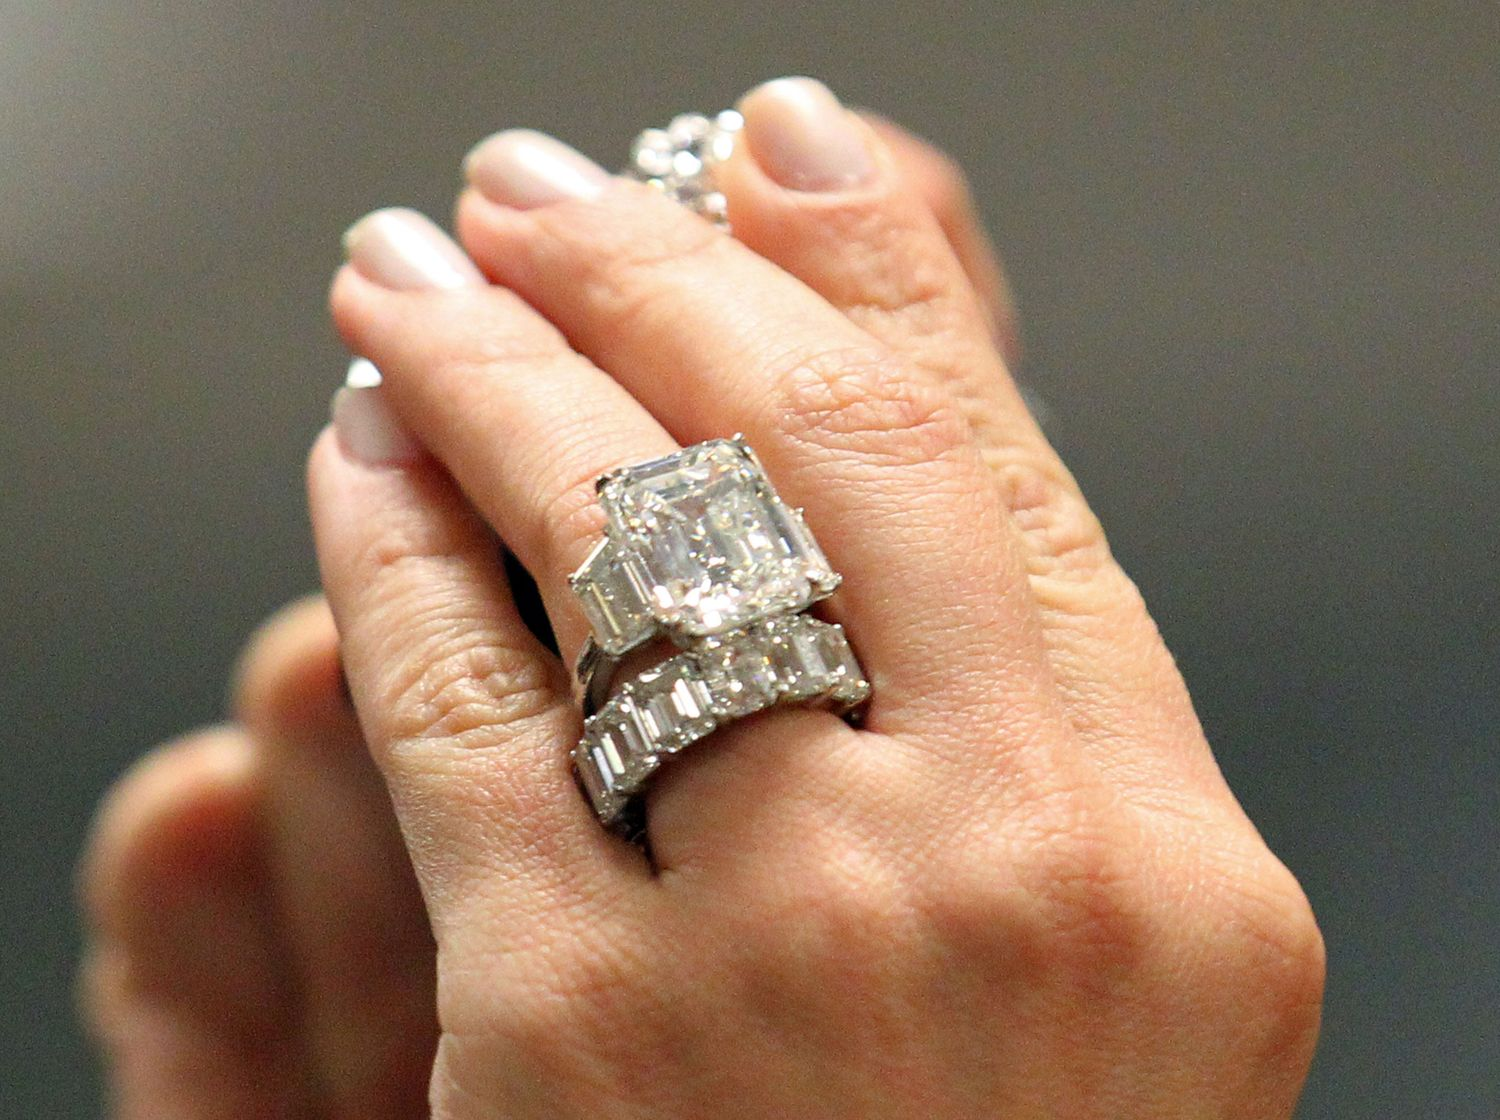 images of kim kardashians ring